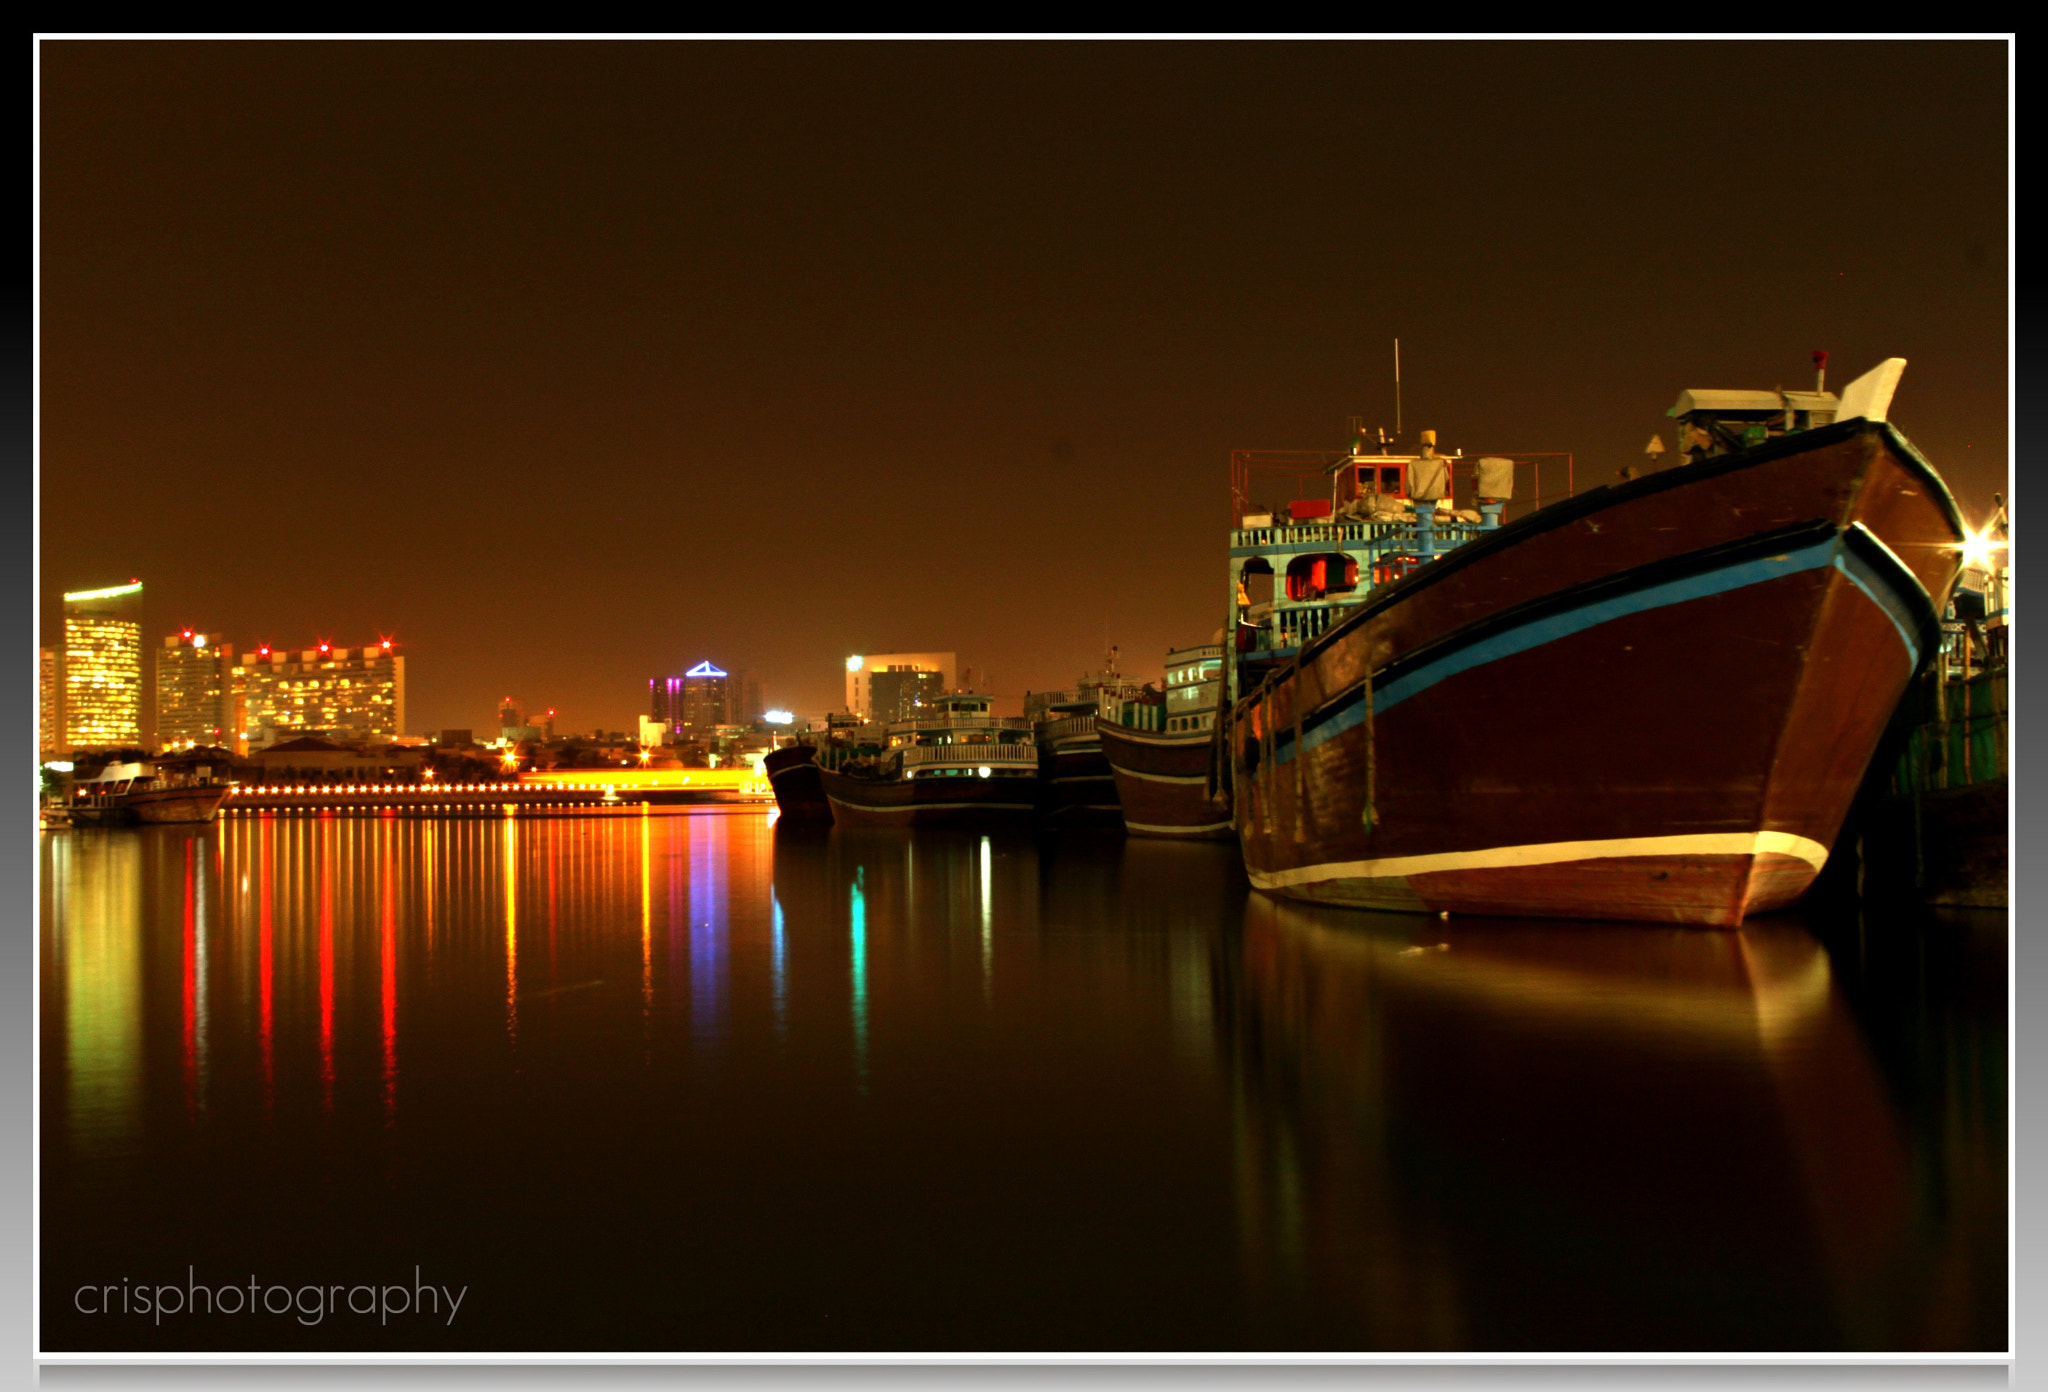 Photograph quiet night by Cristeto Gutas on 500px